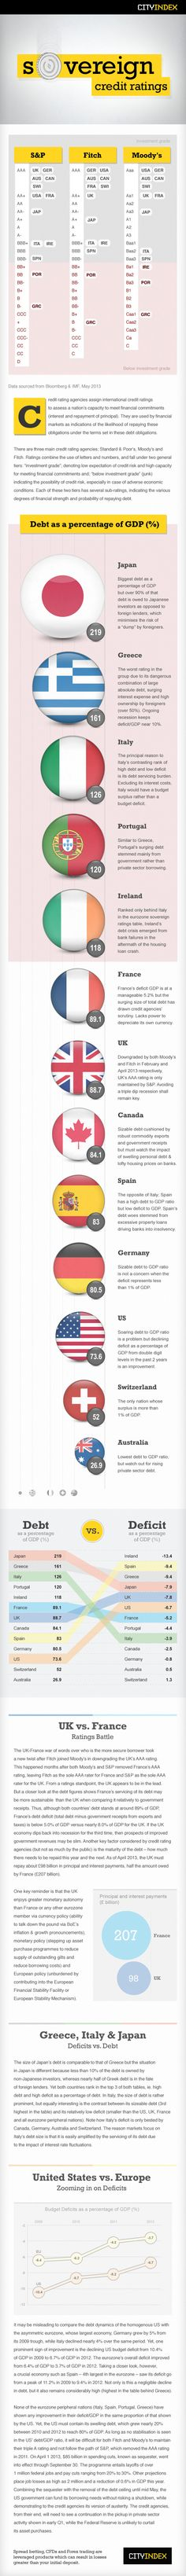 The United States, United Kingdom and France have had their AAA rating removed by credit rating agencies, raising questions as to which country will be next. As traders anticipate and react to the next rating action, volatility in currency and bond markets is gaining momentum. Here is a guide on how the biggest economies stack up in terms of credit ratings, debt and size of economy.